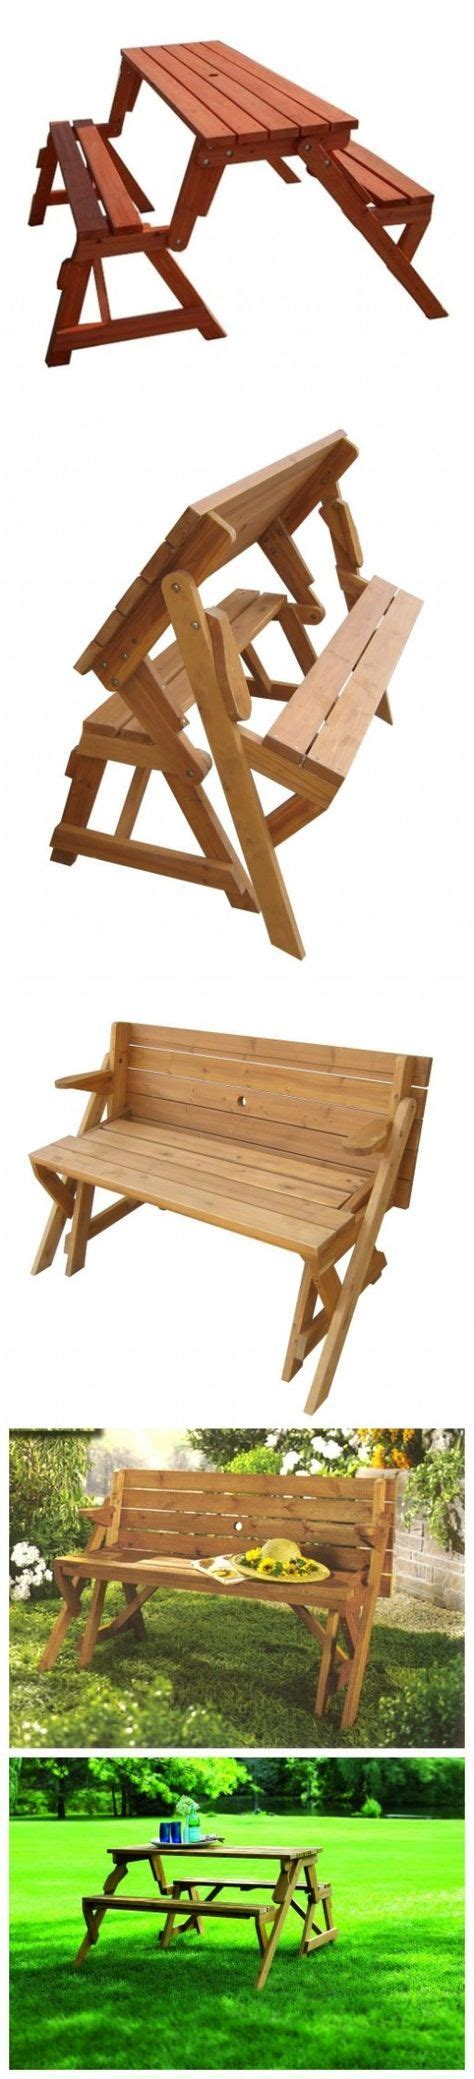 folding picnic bench seat combination how to build a diy 2 in 1 convertible folding bench and